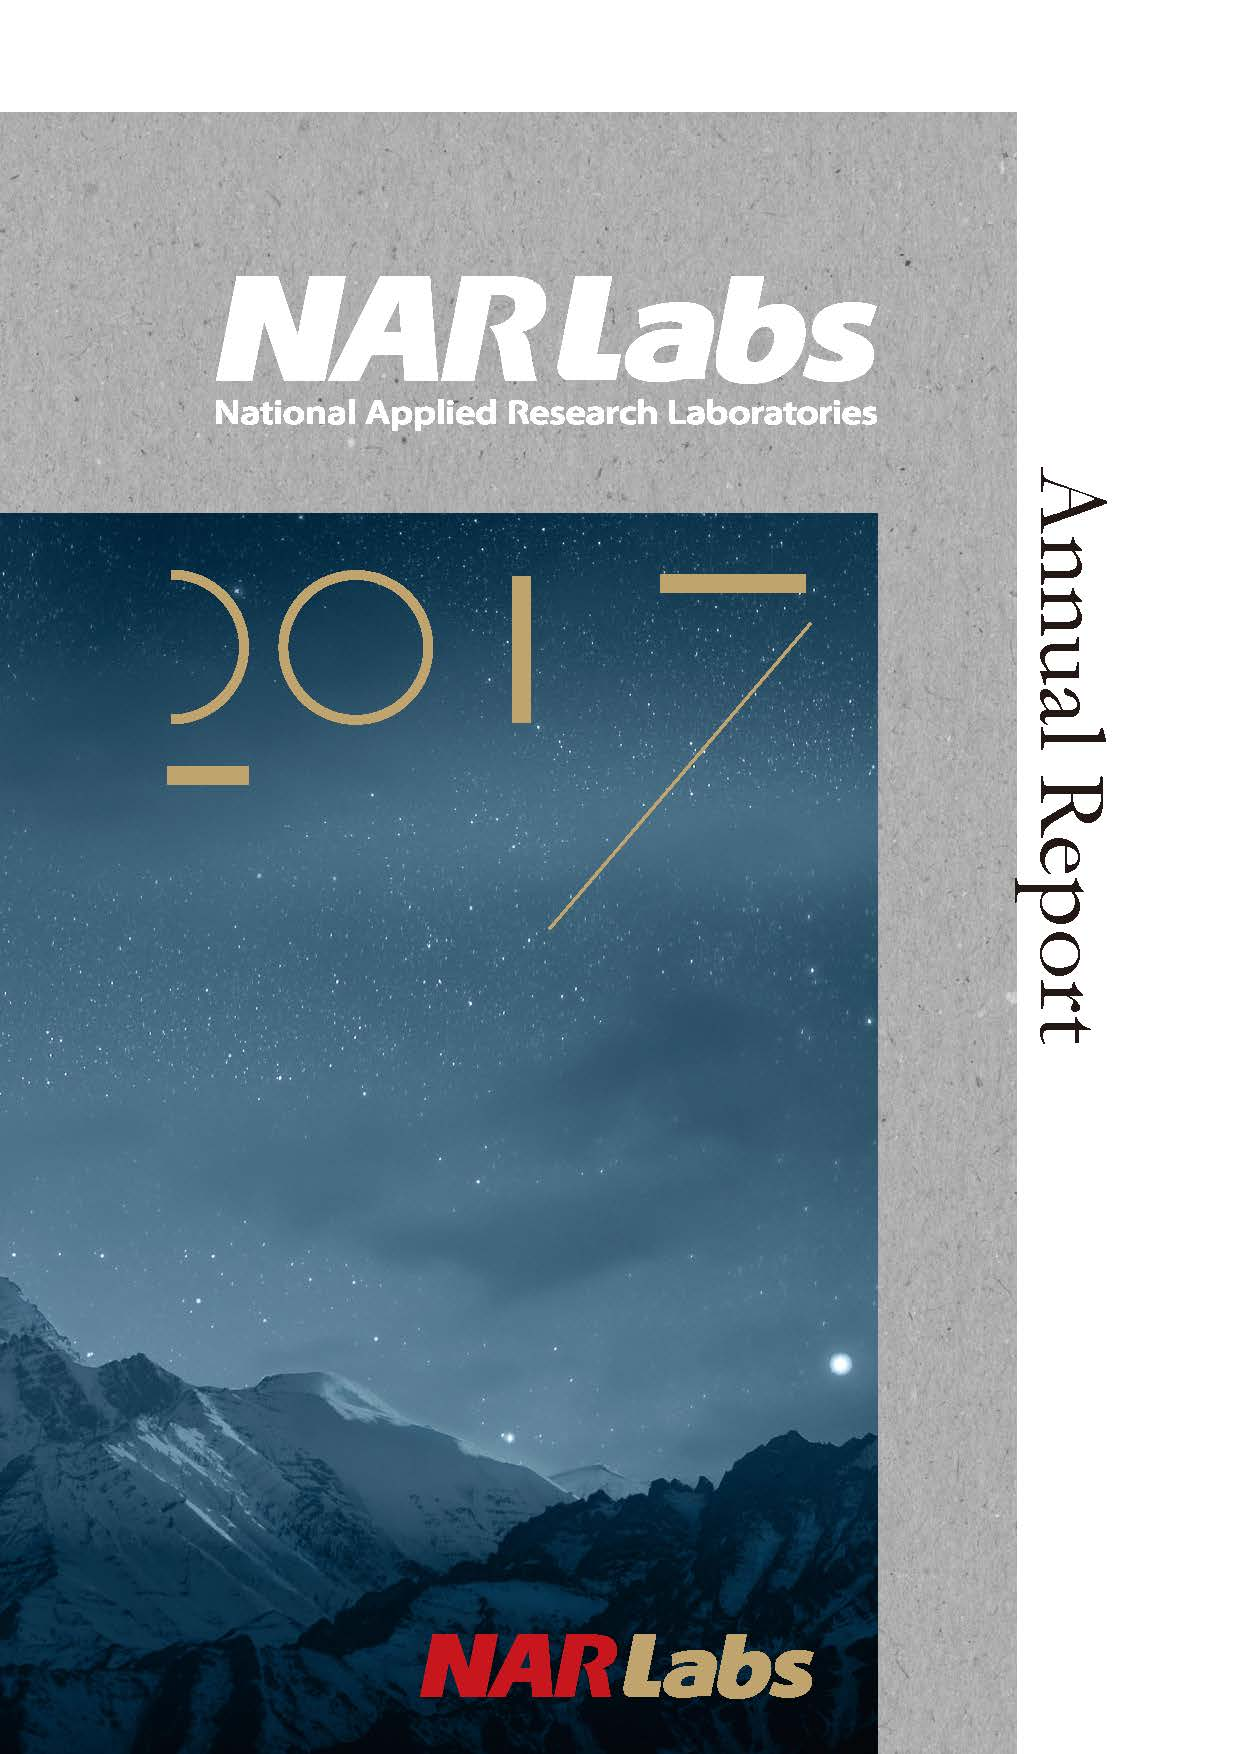 NARLabs Annual Report